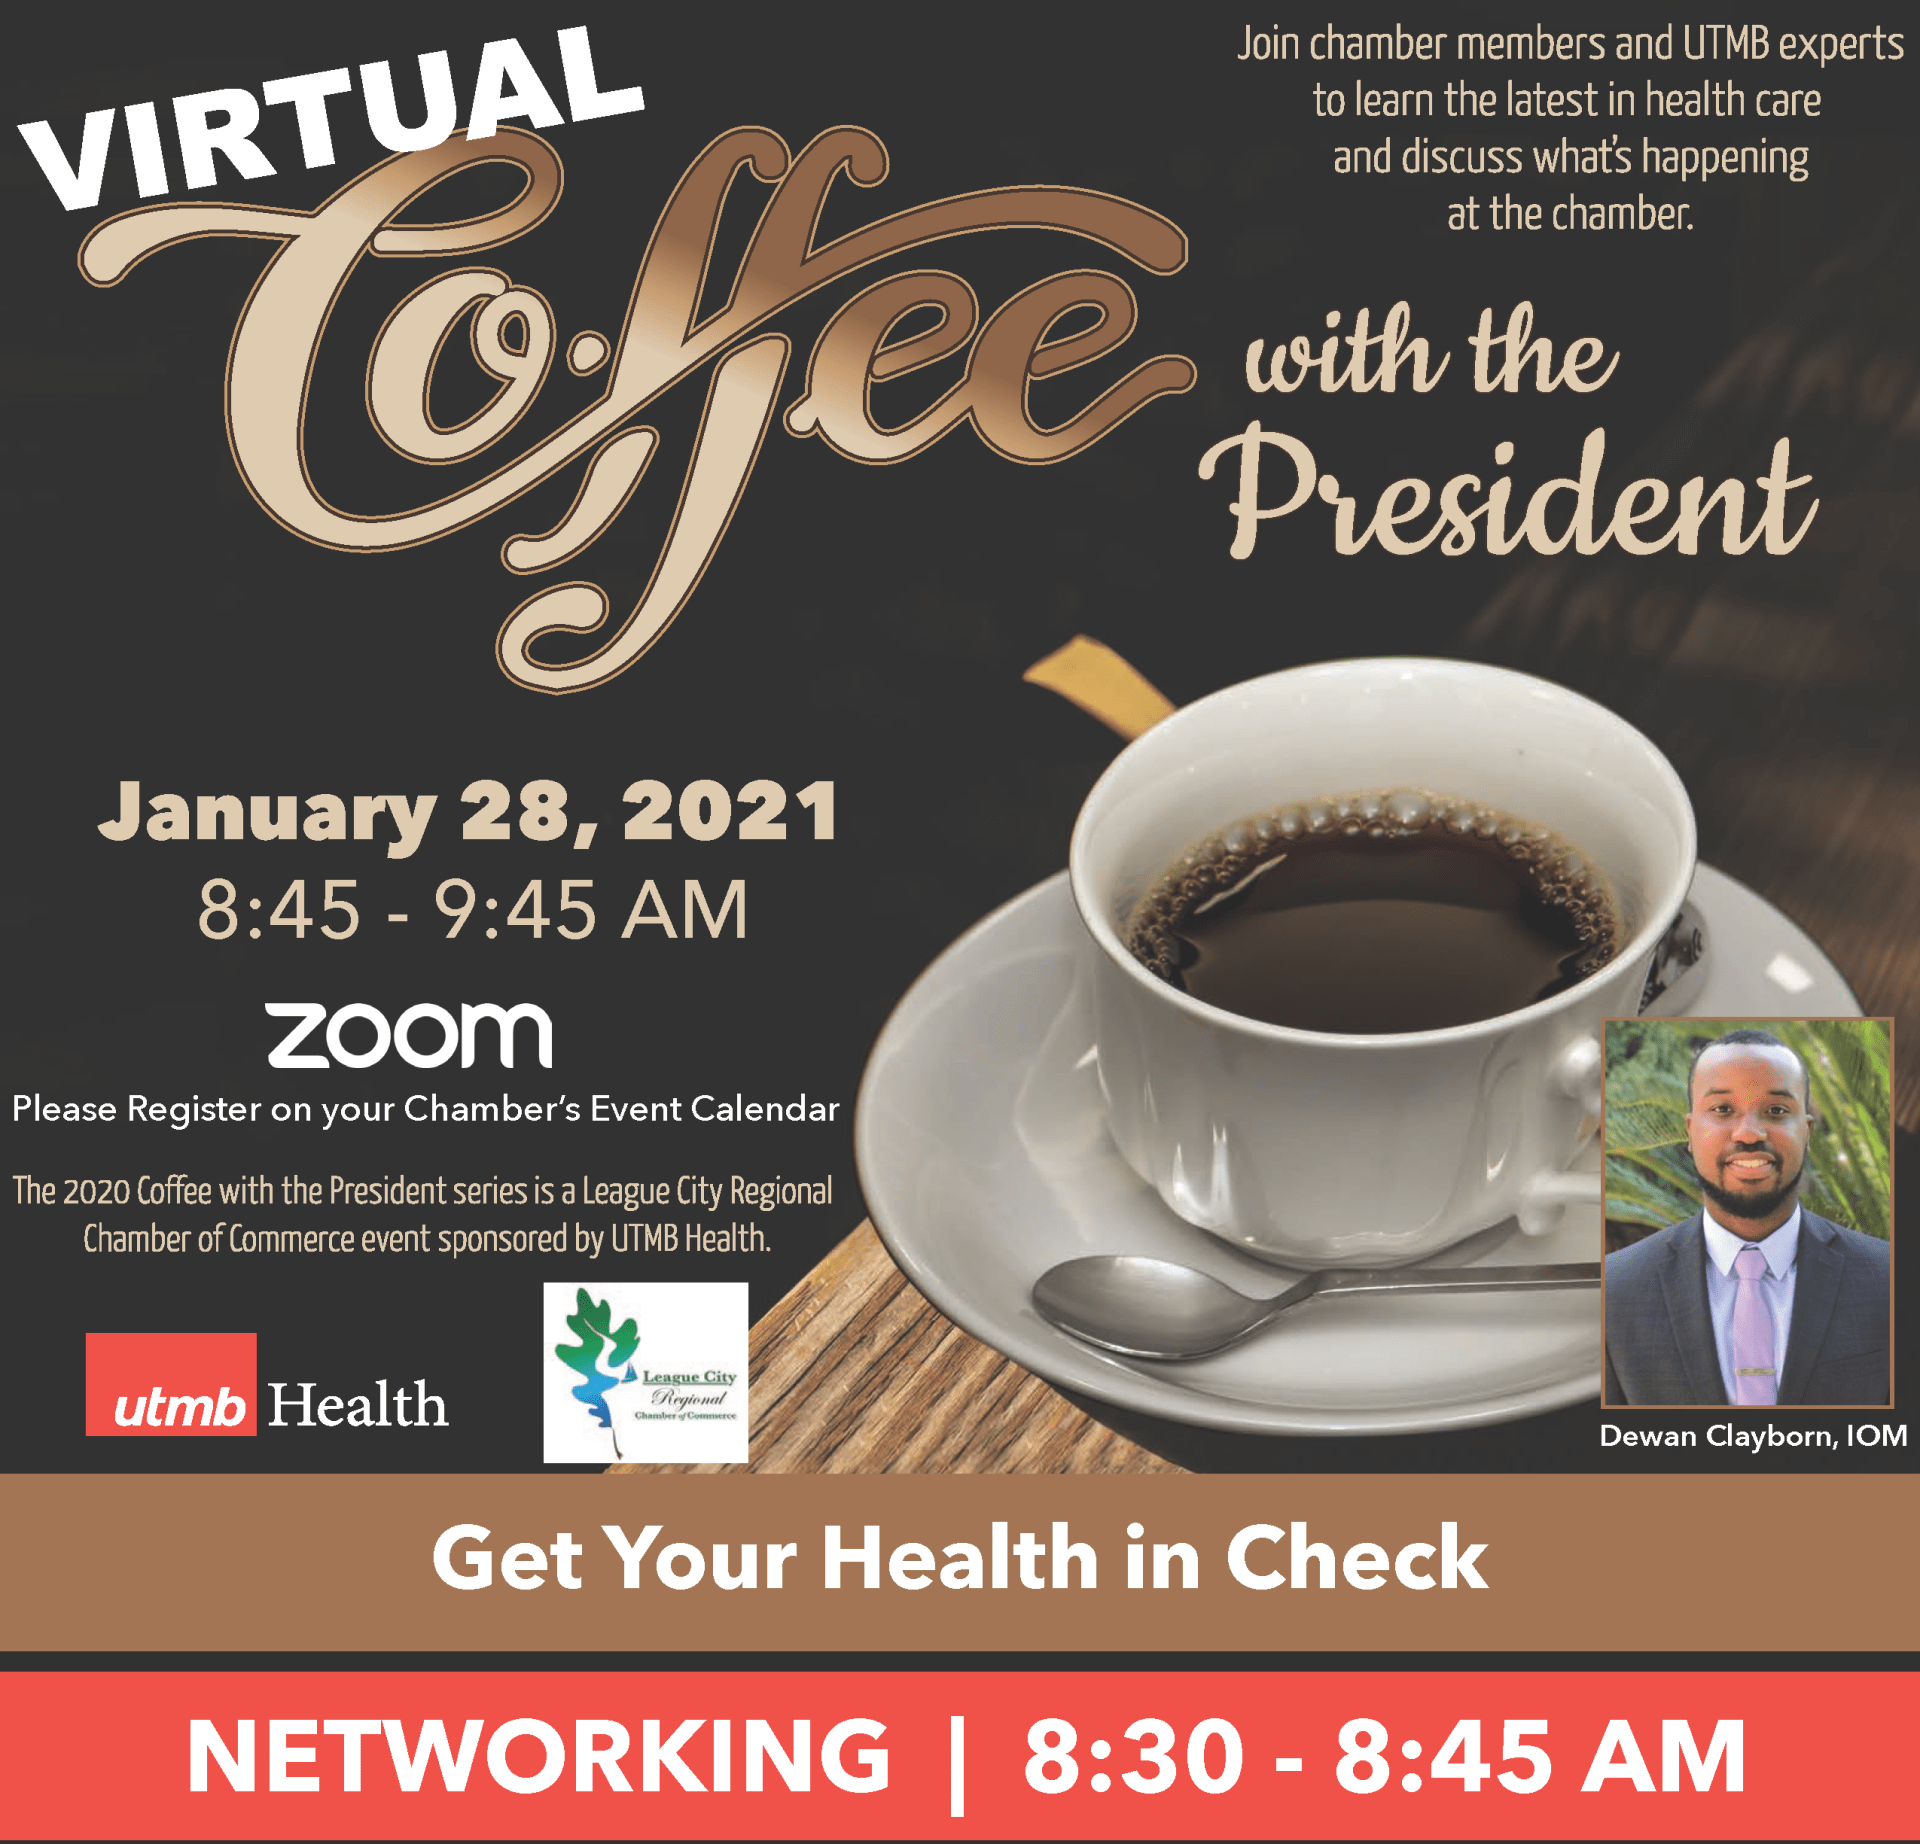 1.28.21-Virtual-Coffee-with-President-art-w1920.png